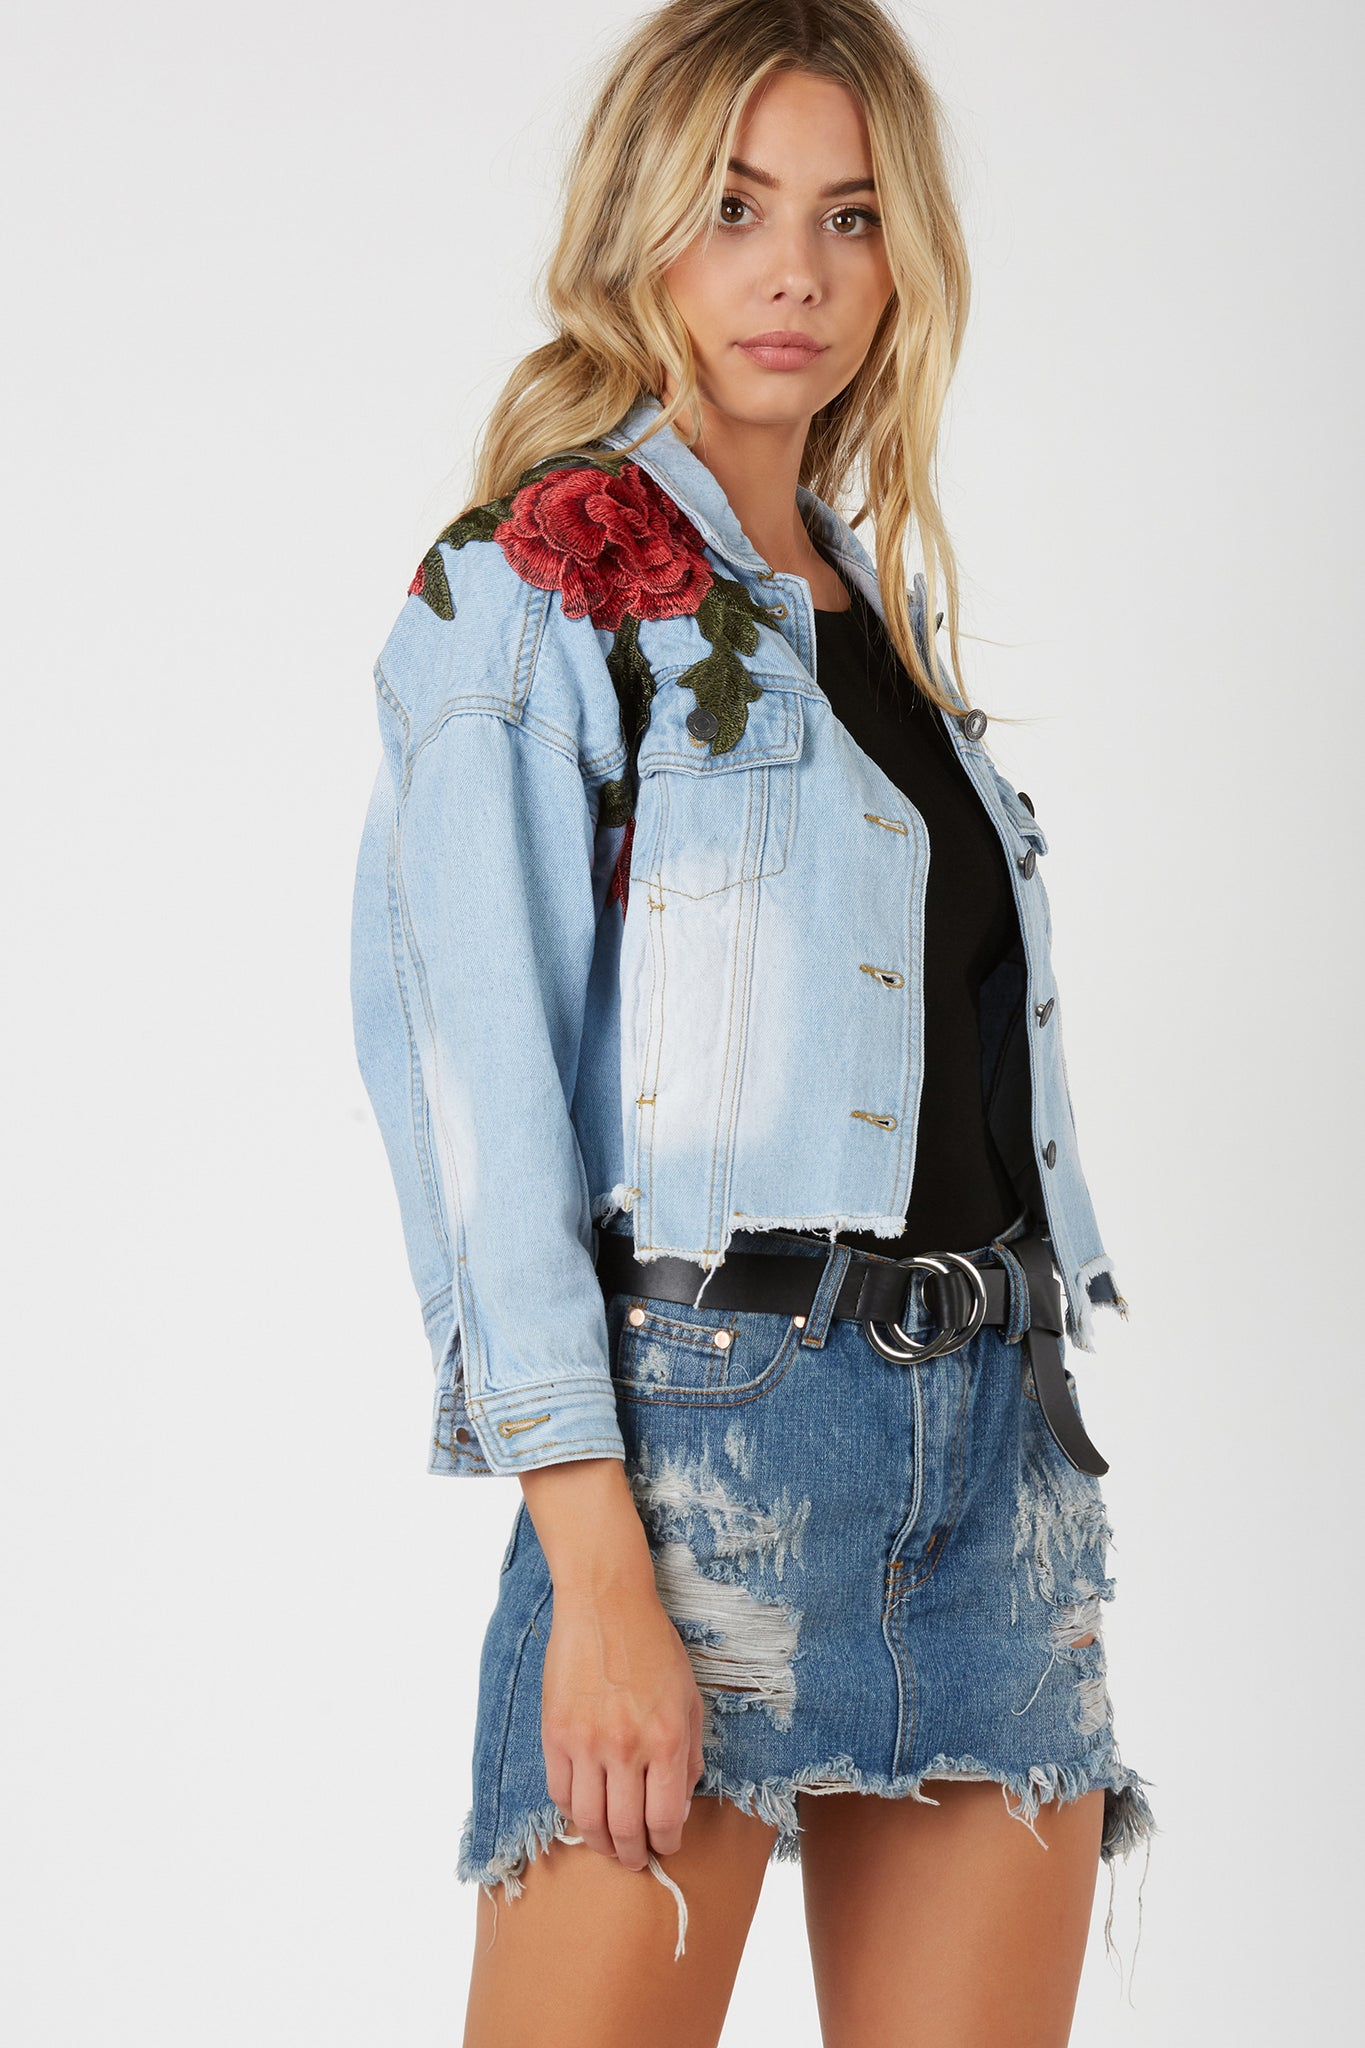 Stylish denim jacket with bold floral patches throughout. Fadded wash with uneven, raw hem finish for a vintage vibe.